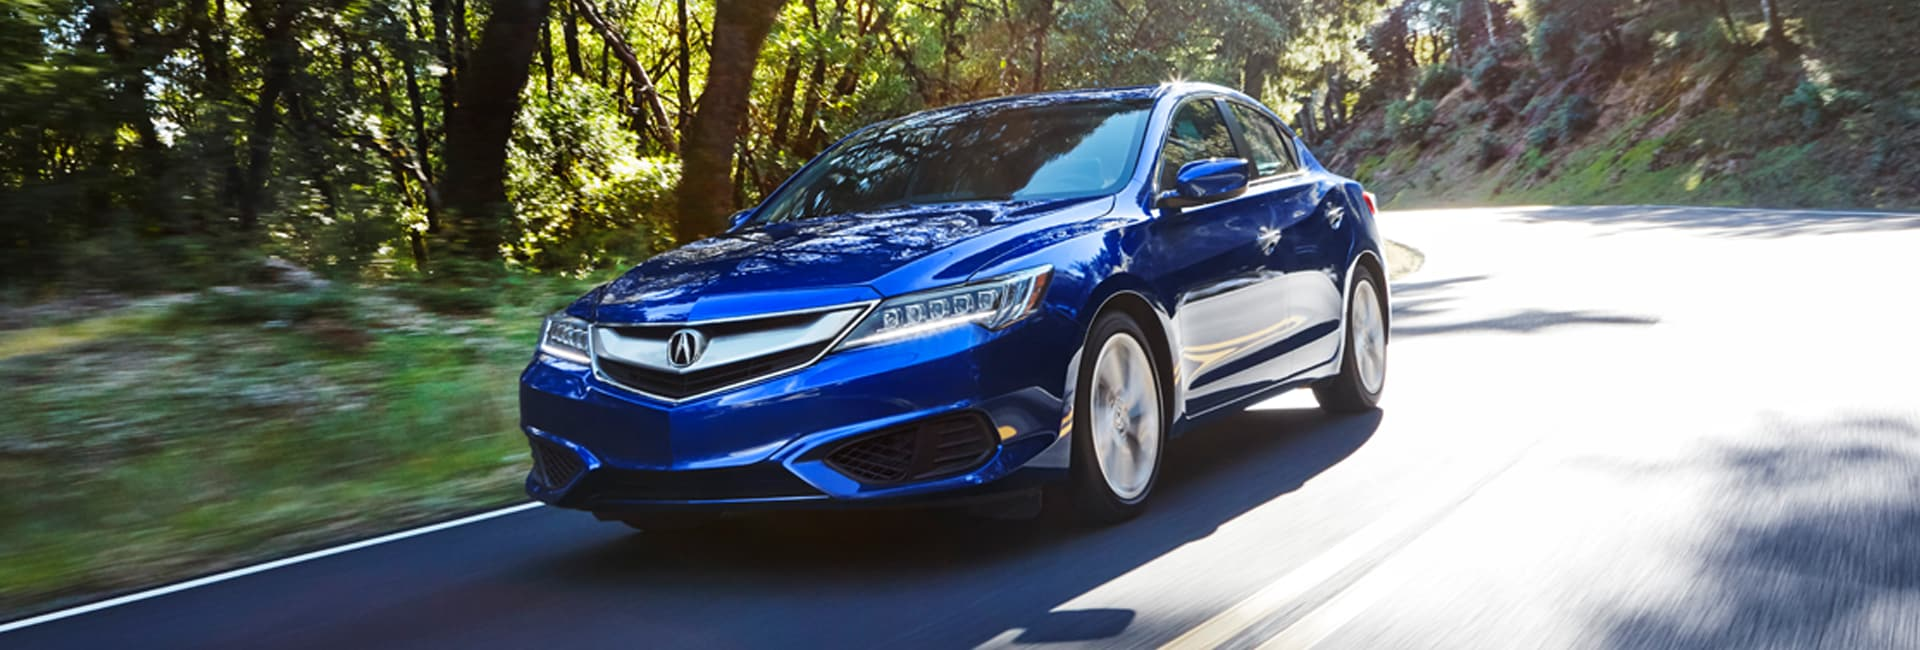 2017 Acura ILX Exterior Features